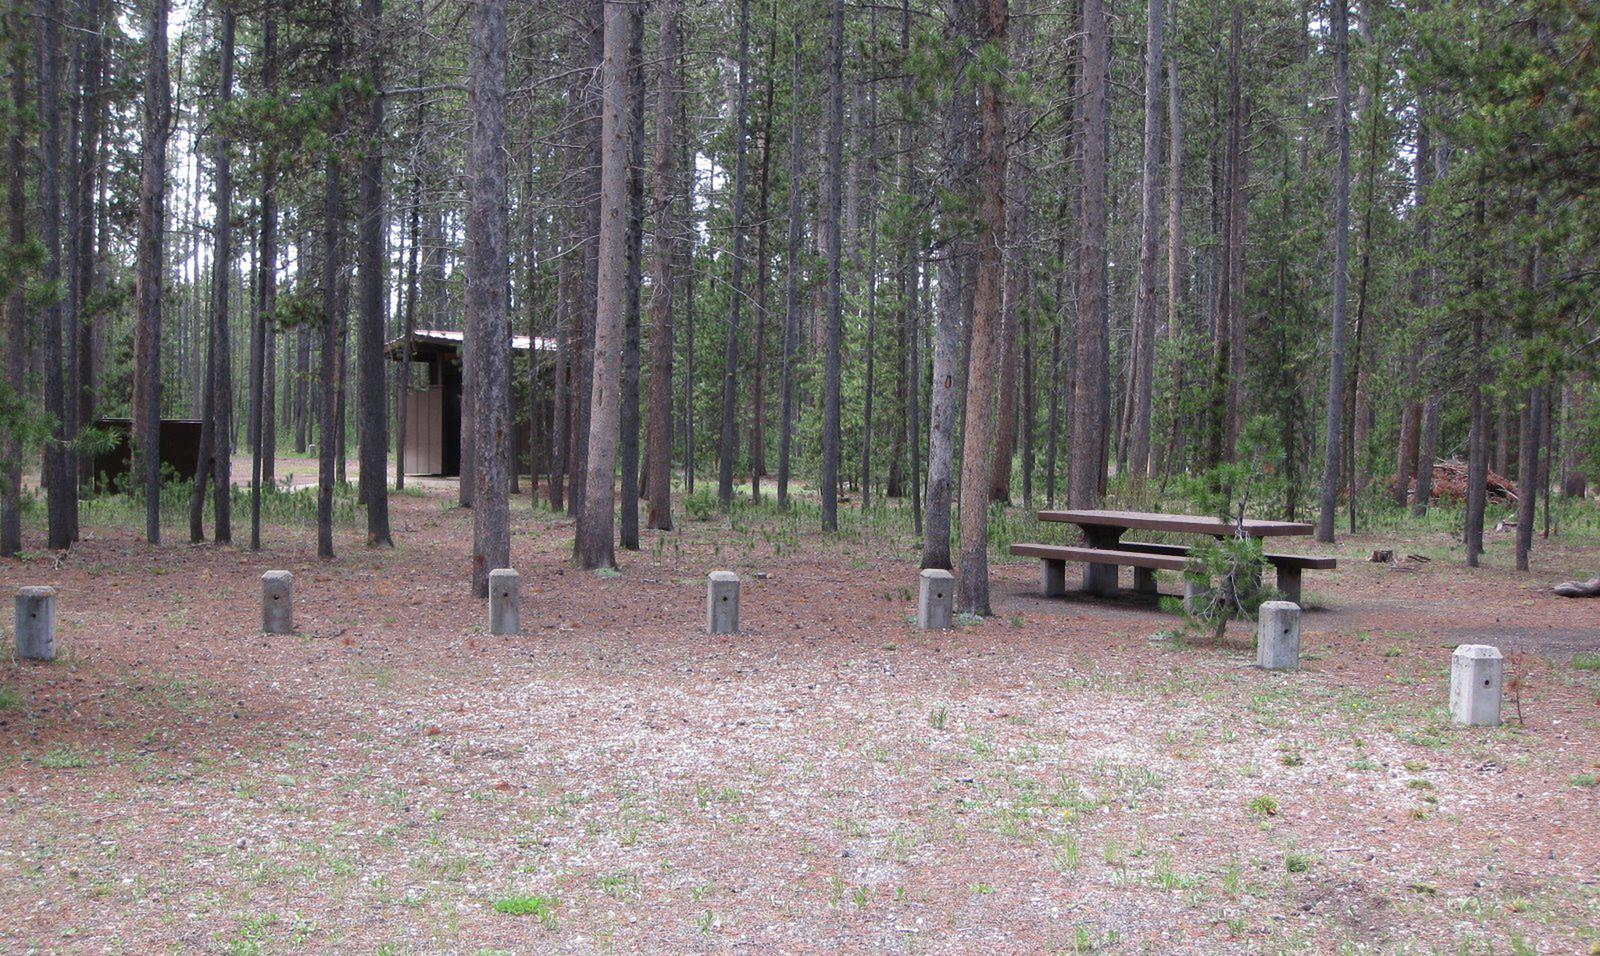 Site D14, surrounded by pine trees, picnic table & fire ringSite D14